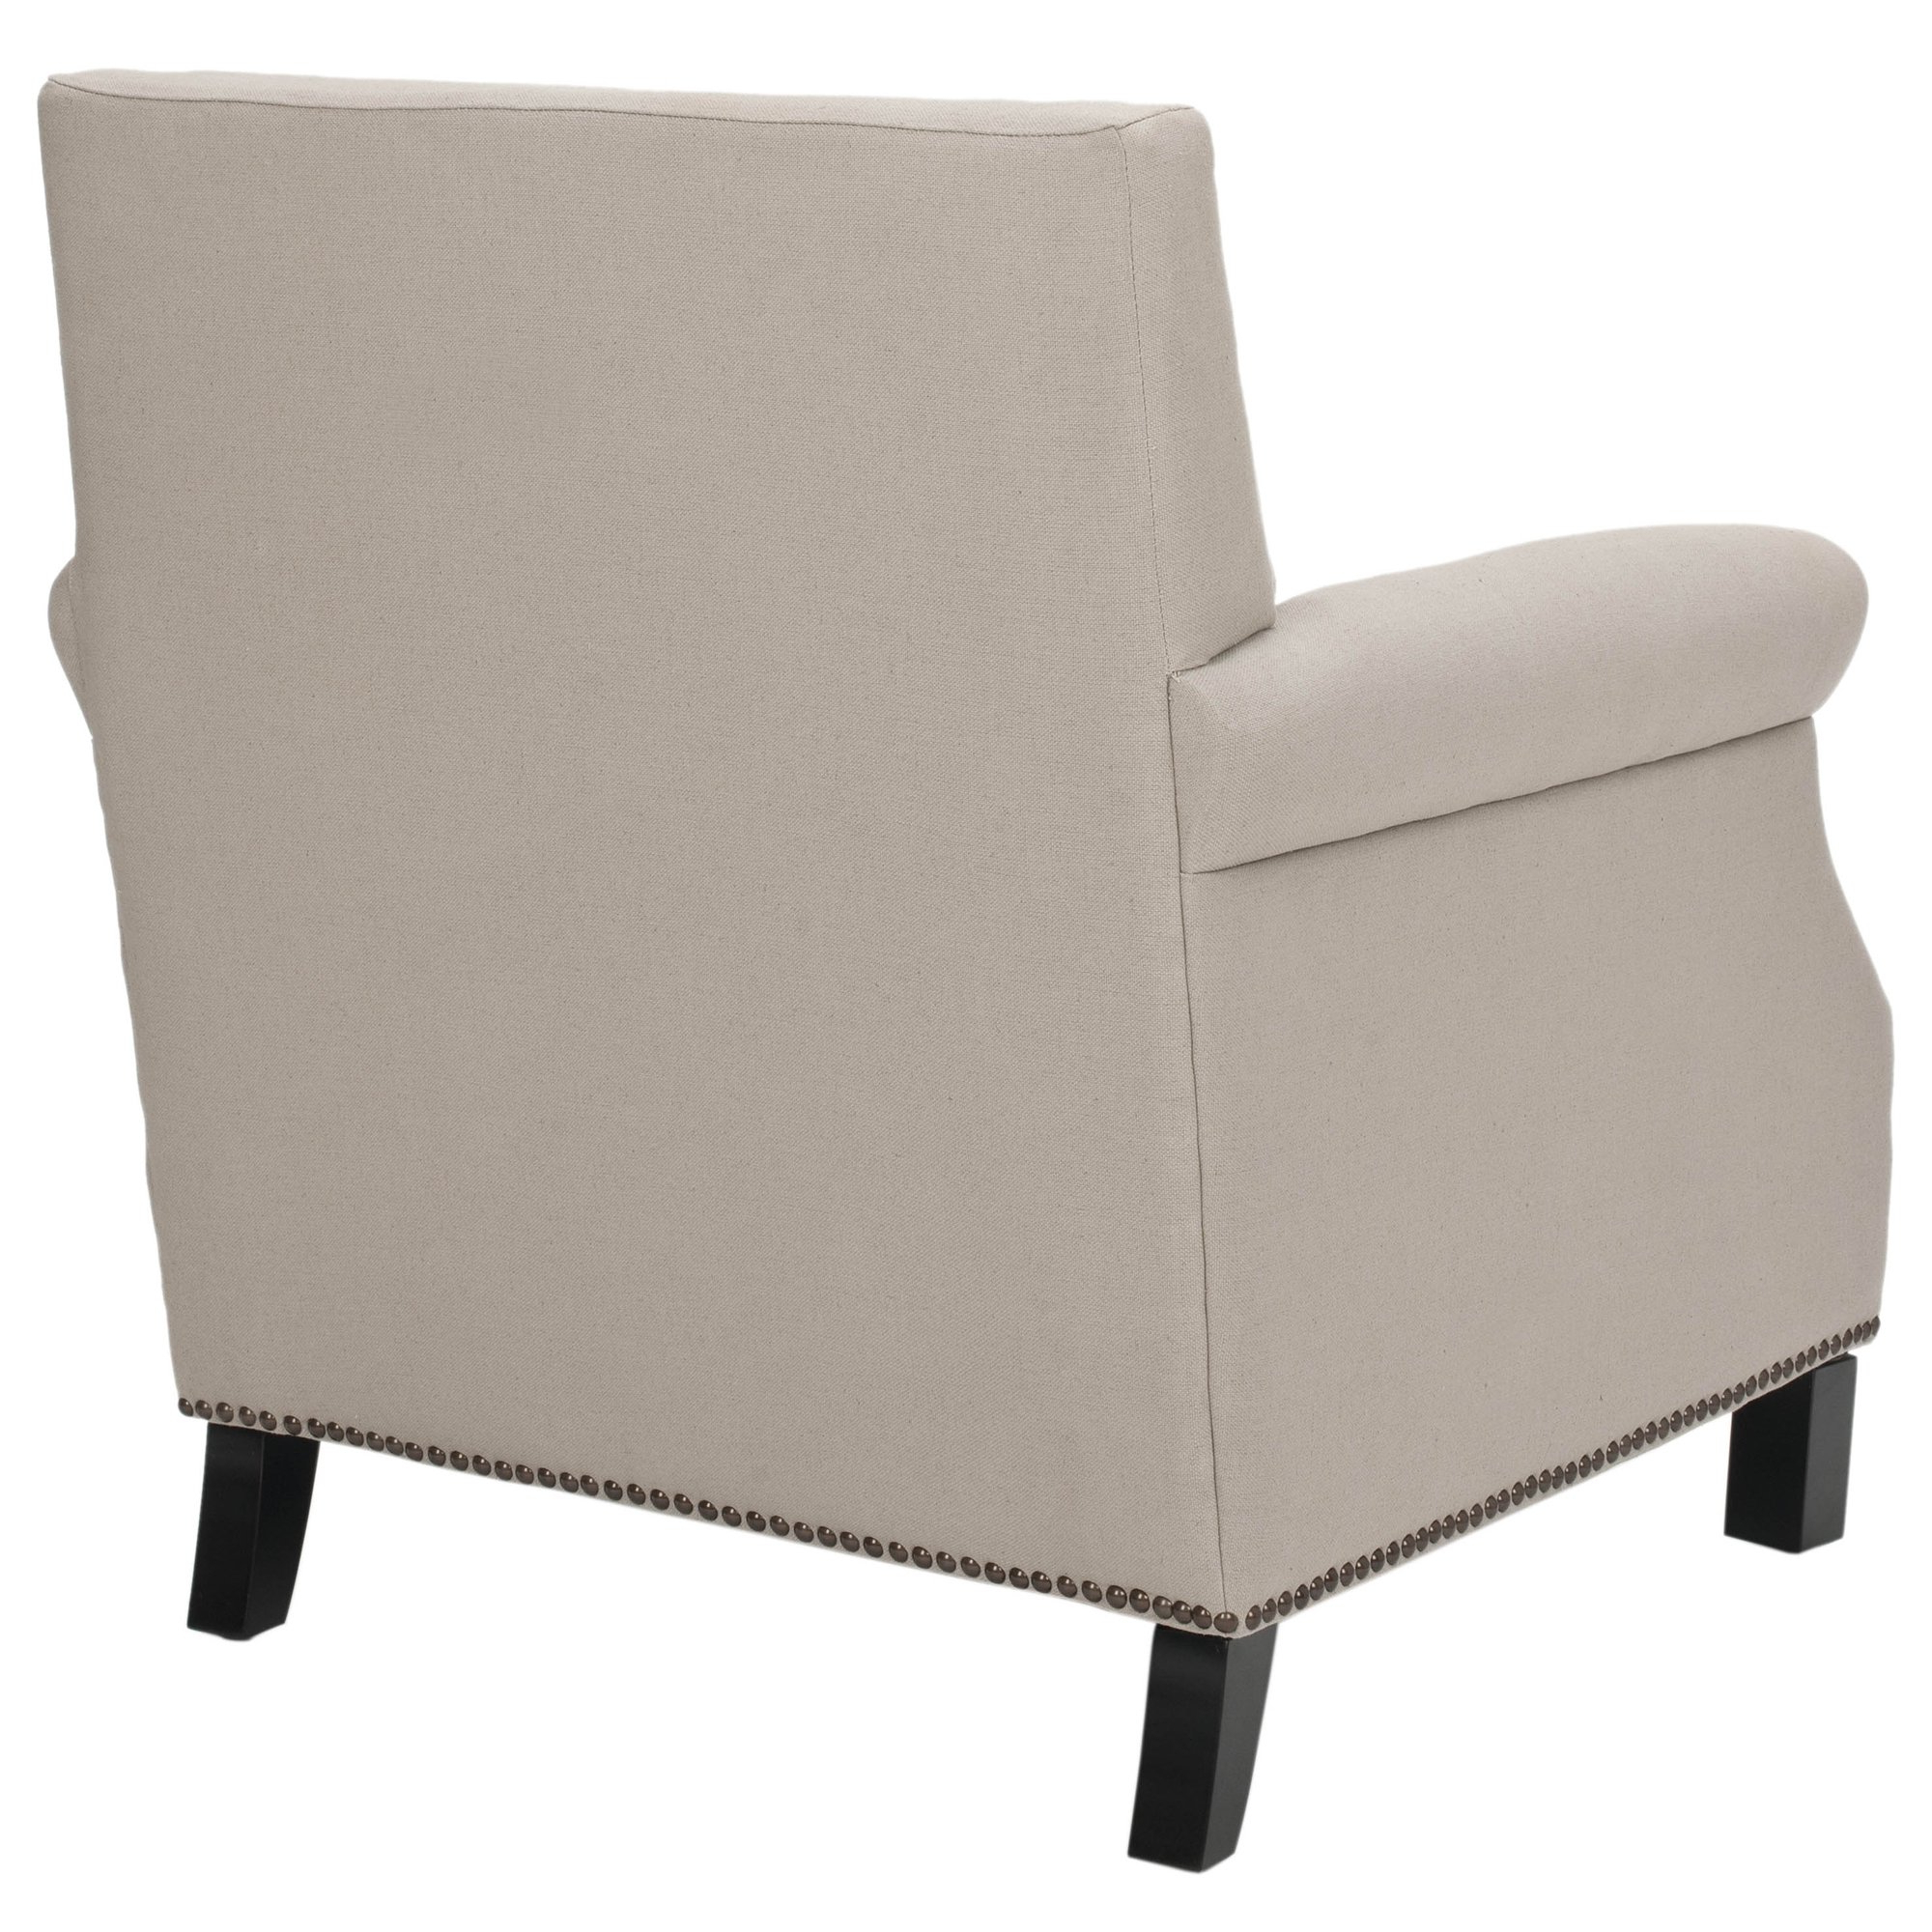 Shop Safavieh Mansfield Beige Club Chair – Free Shipping Today In Fashionable Mansfield Beige Linen Sofa Chairs (Gallery 10 of 20)